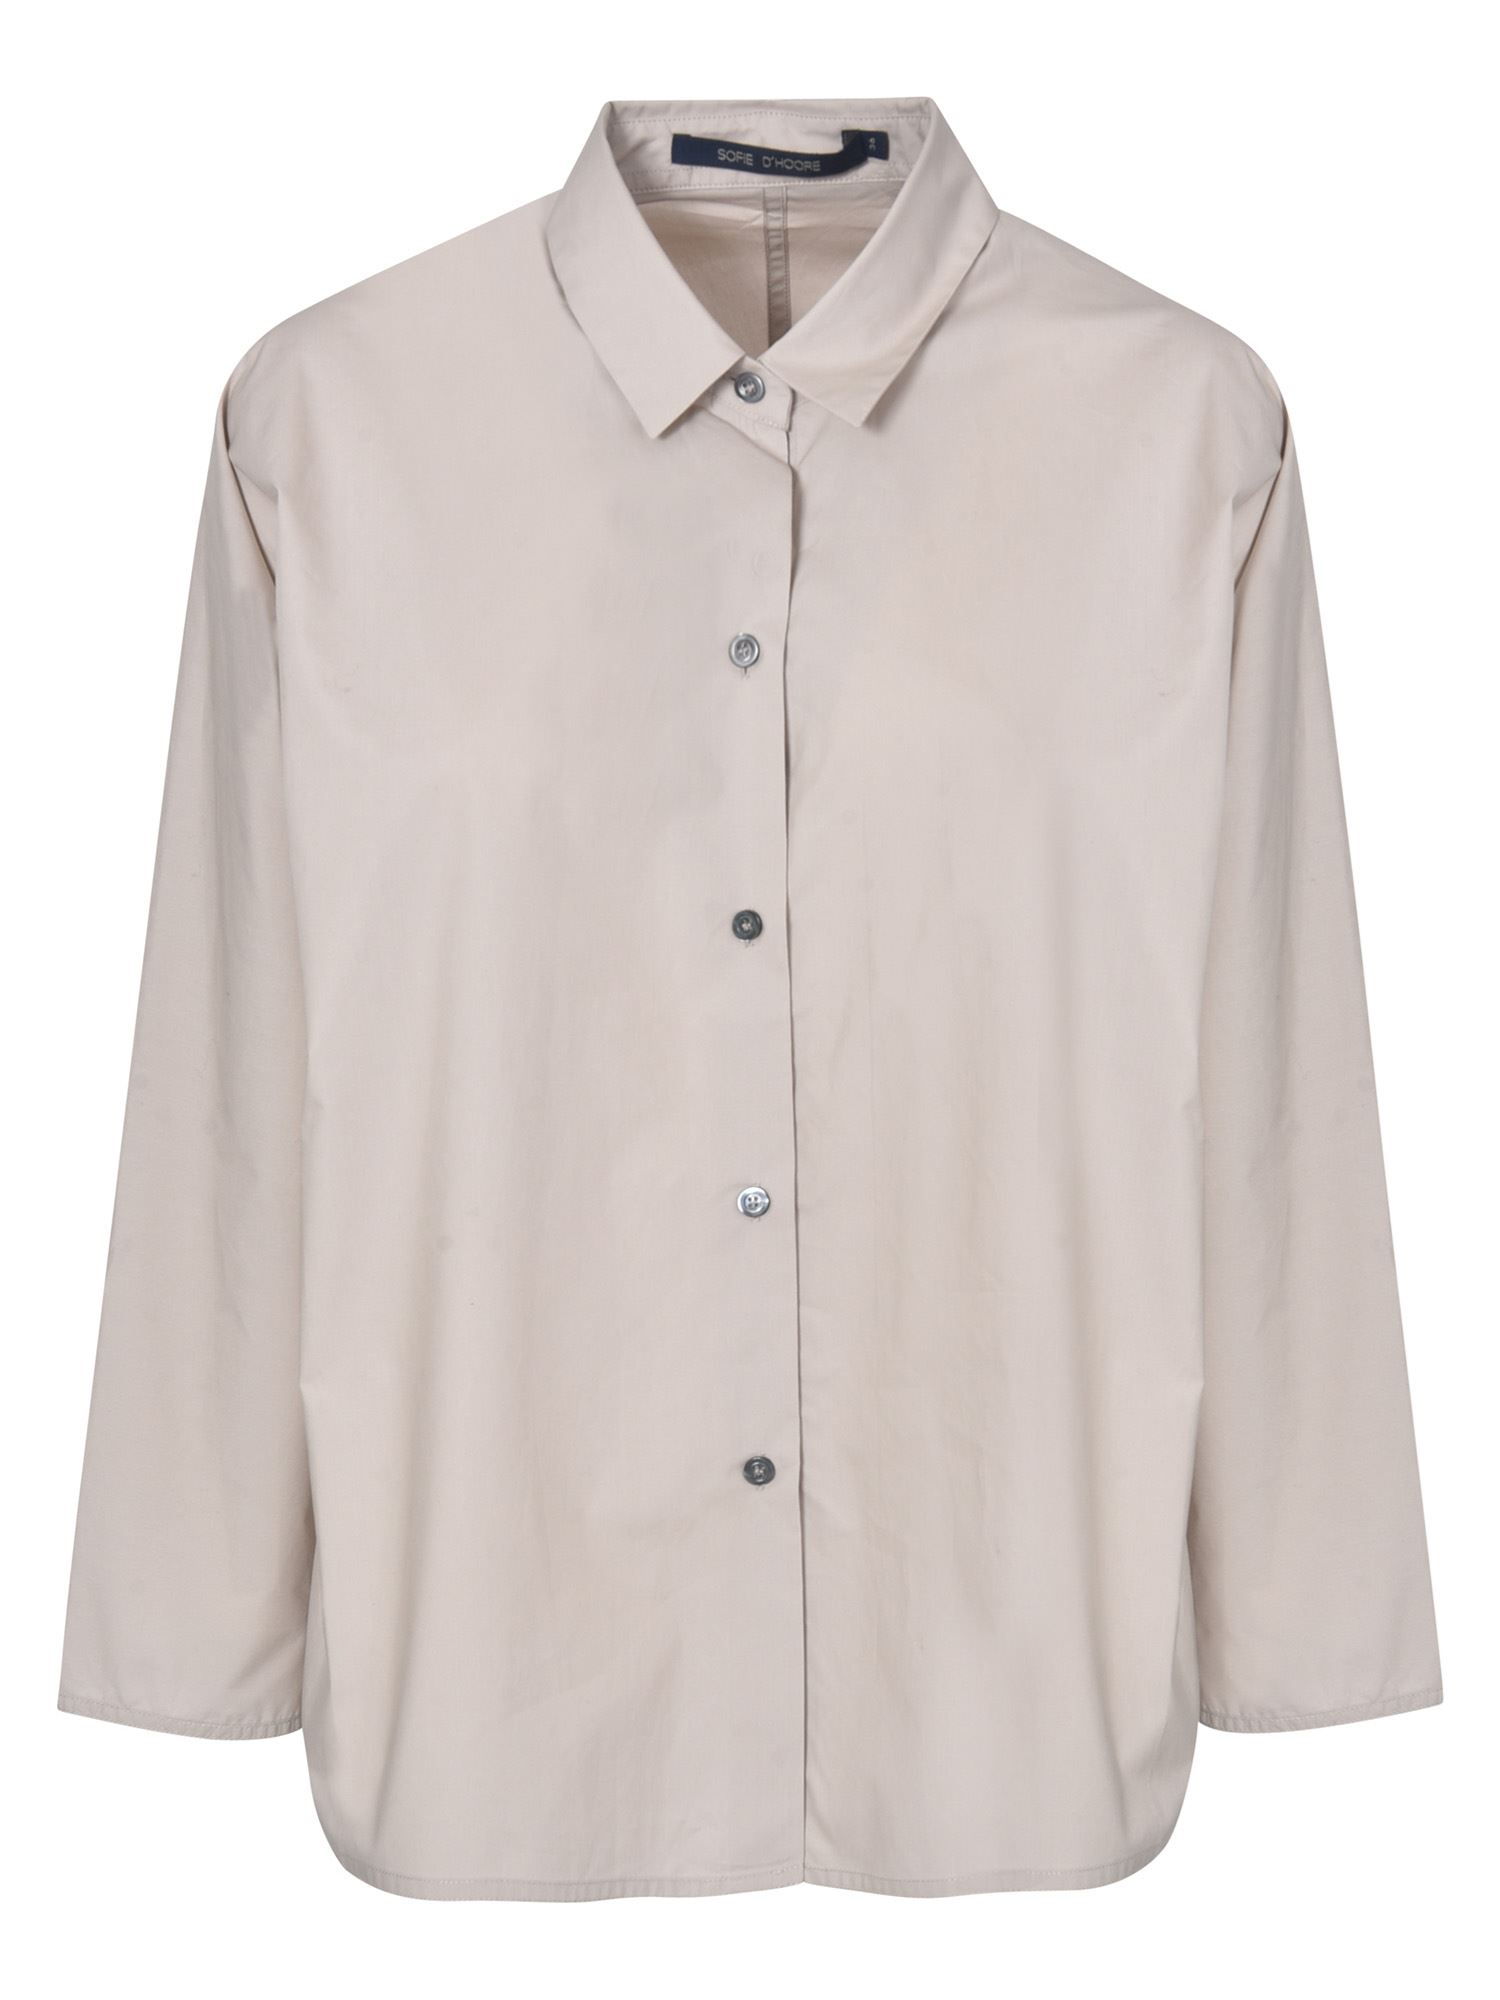 Sofie D'hoore WIDE SLEEVE SHIRT IN DESERT COLOR